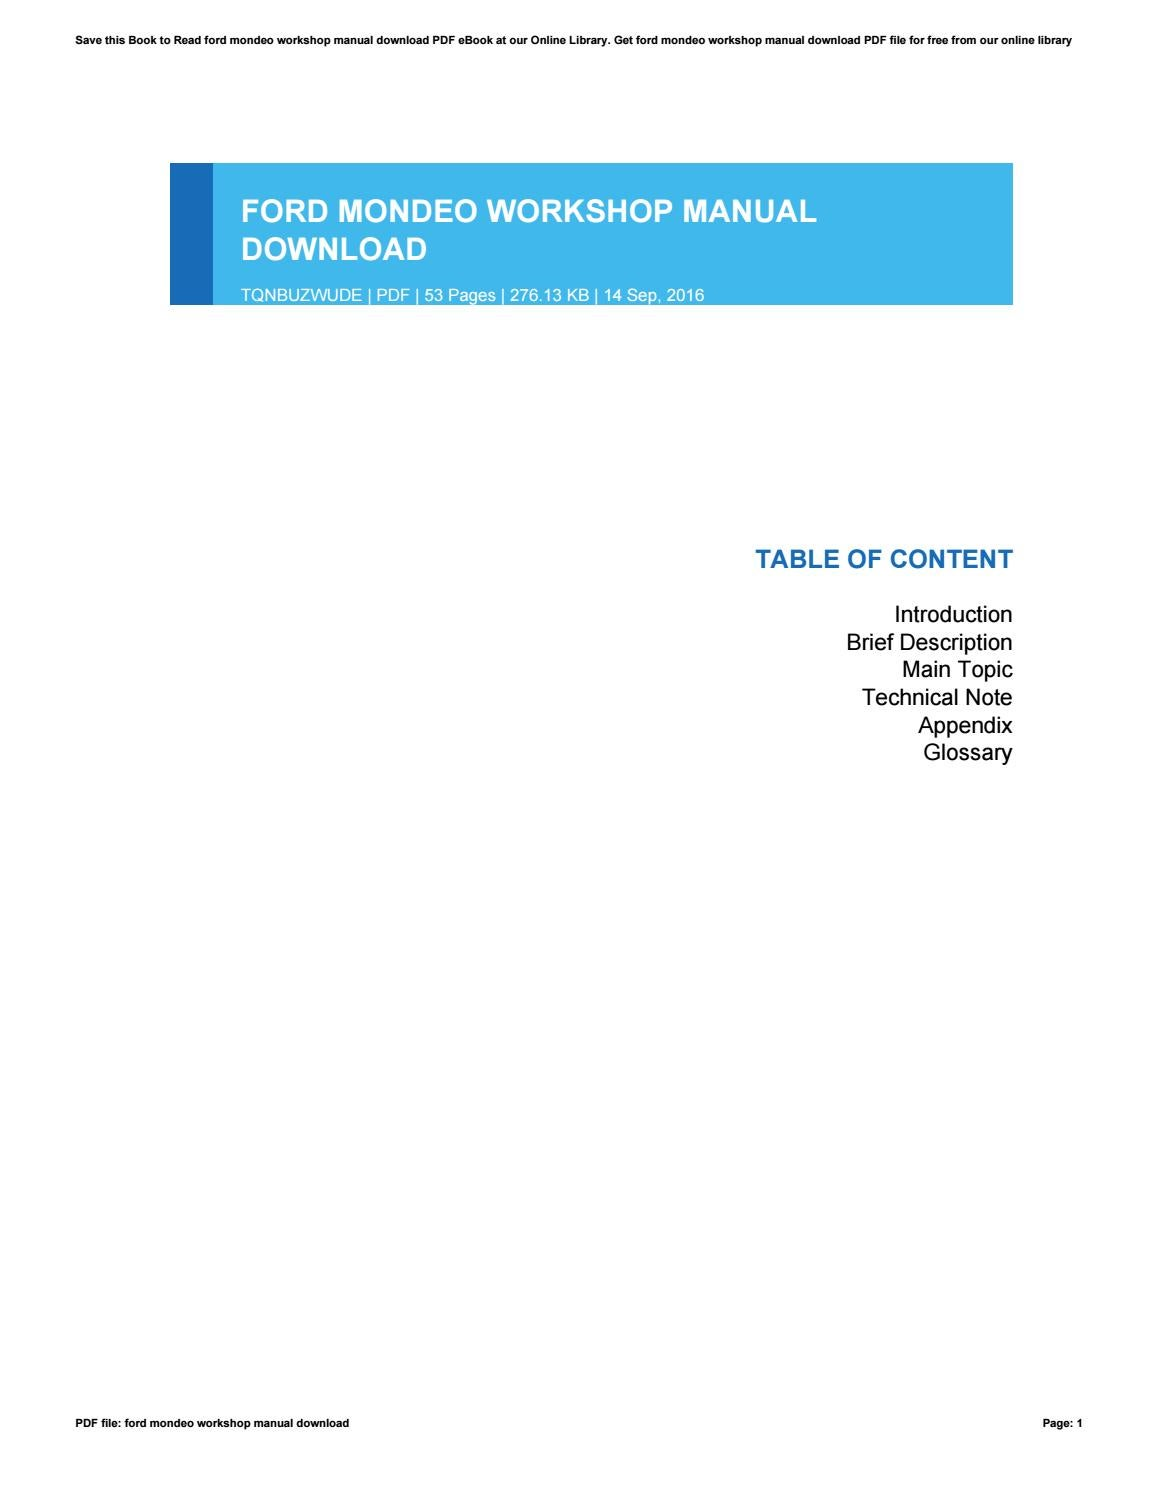 Tag 2016 Ford Mondeo Workshop Manual Ecosport 2014 B515 Wiring Diagram Auto Repair Forum